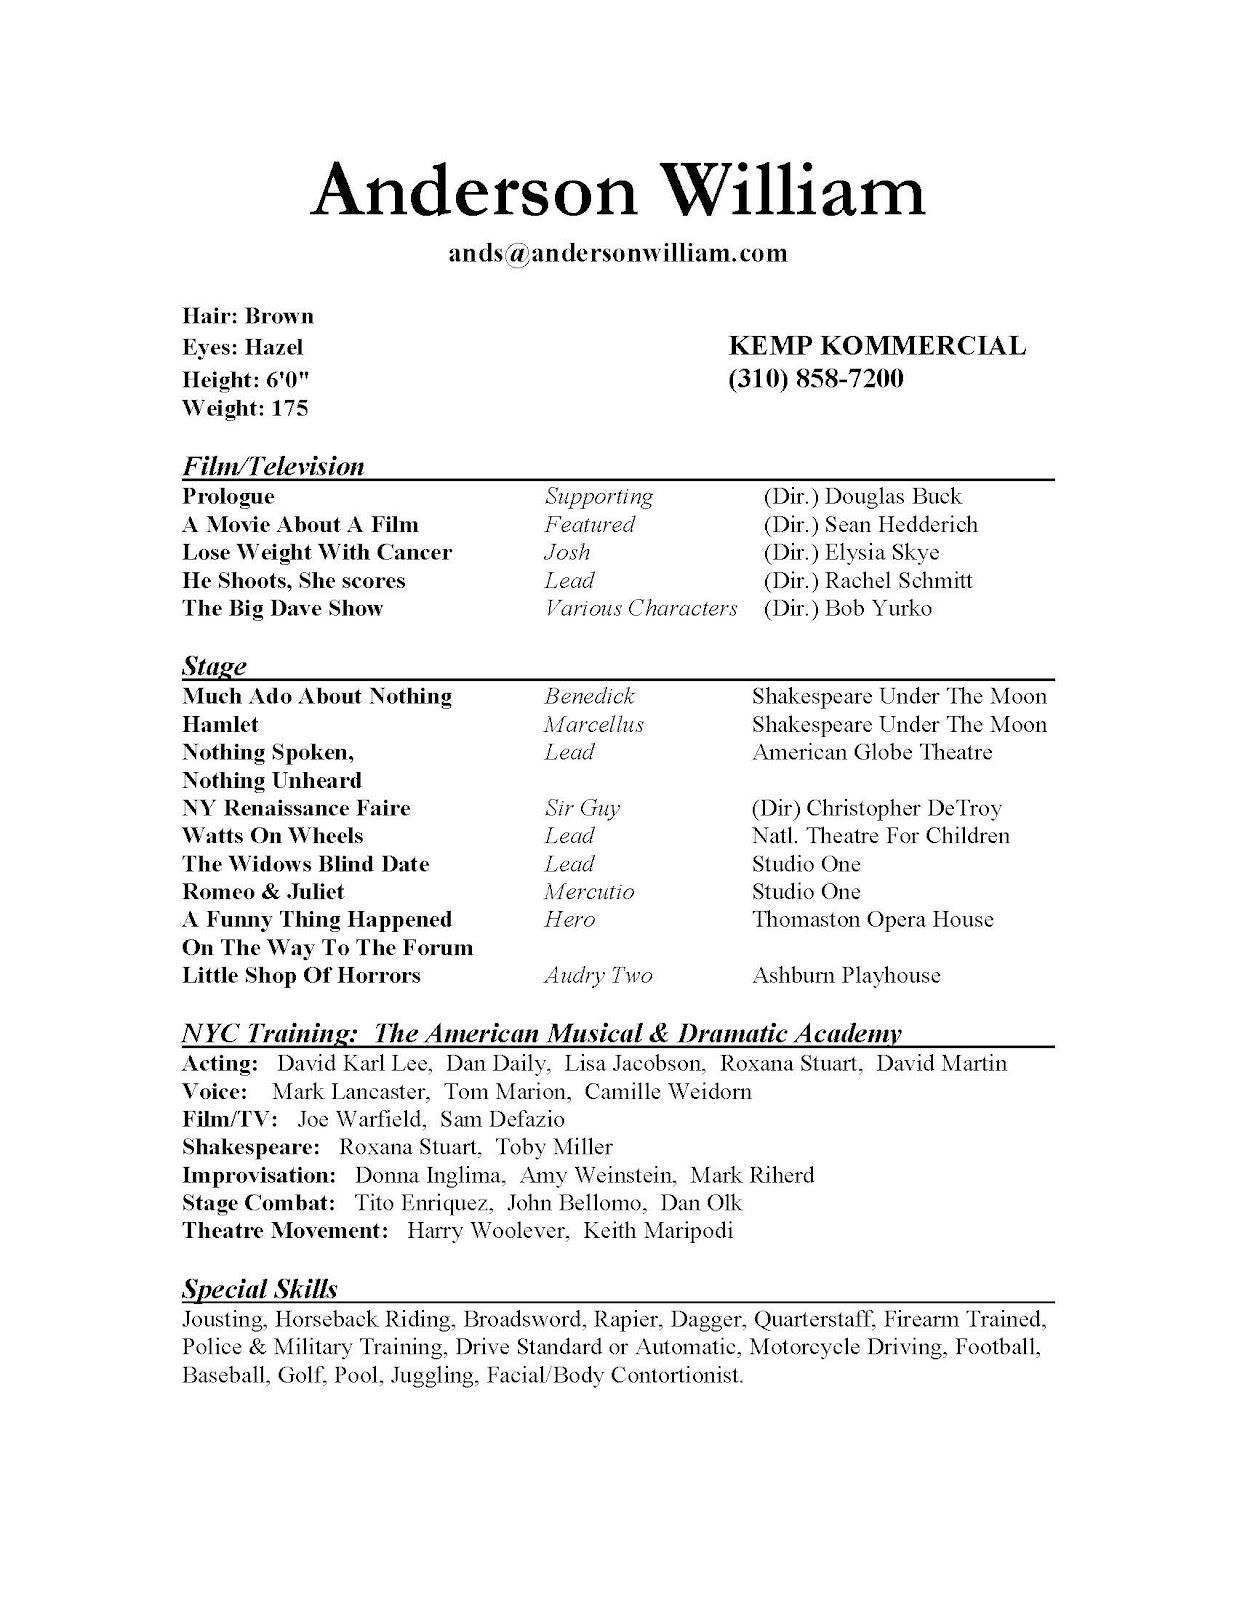 Sample Resume Pdf Perfect Mining Resume Perfect Mining Resume Resume Pdf Download